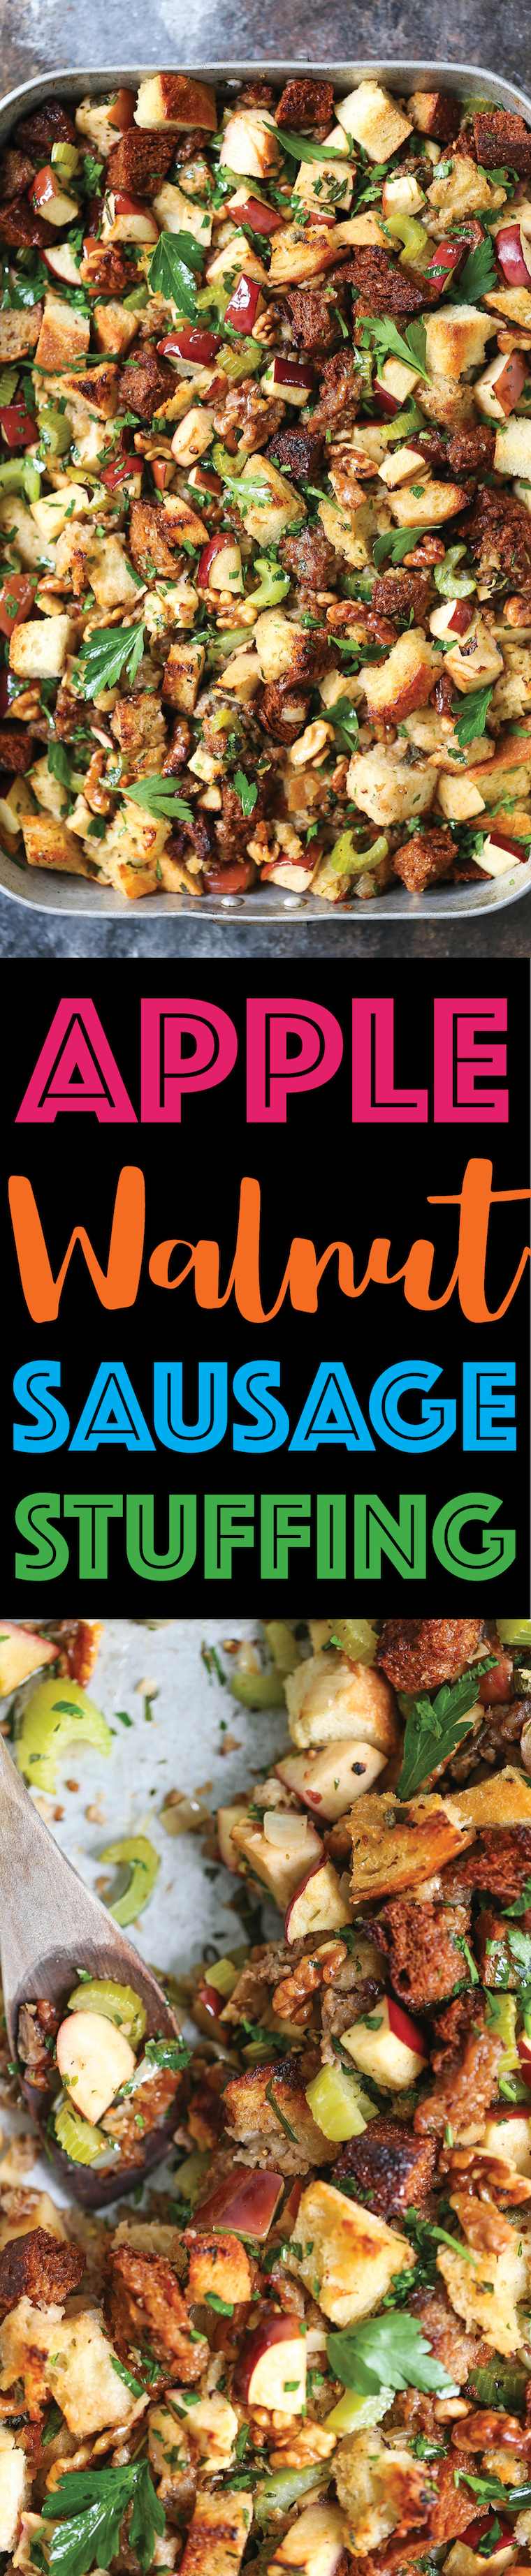 Apple Walnut Sausage Stuffing -Make your stuffing ahead of time! It's easy, quick, and flavorful with crumbled sausage, fresh herbs, and apples! SO GOOD!!!